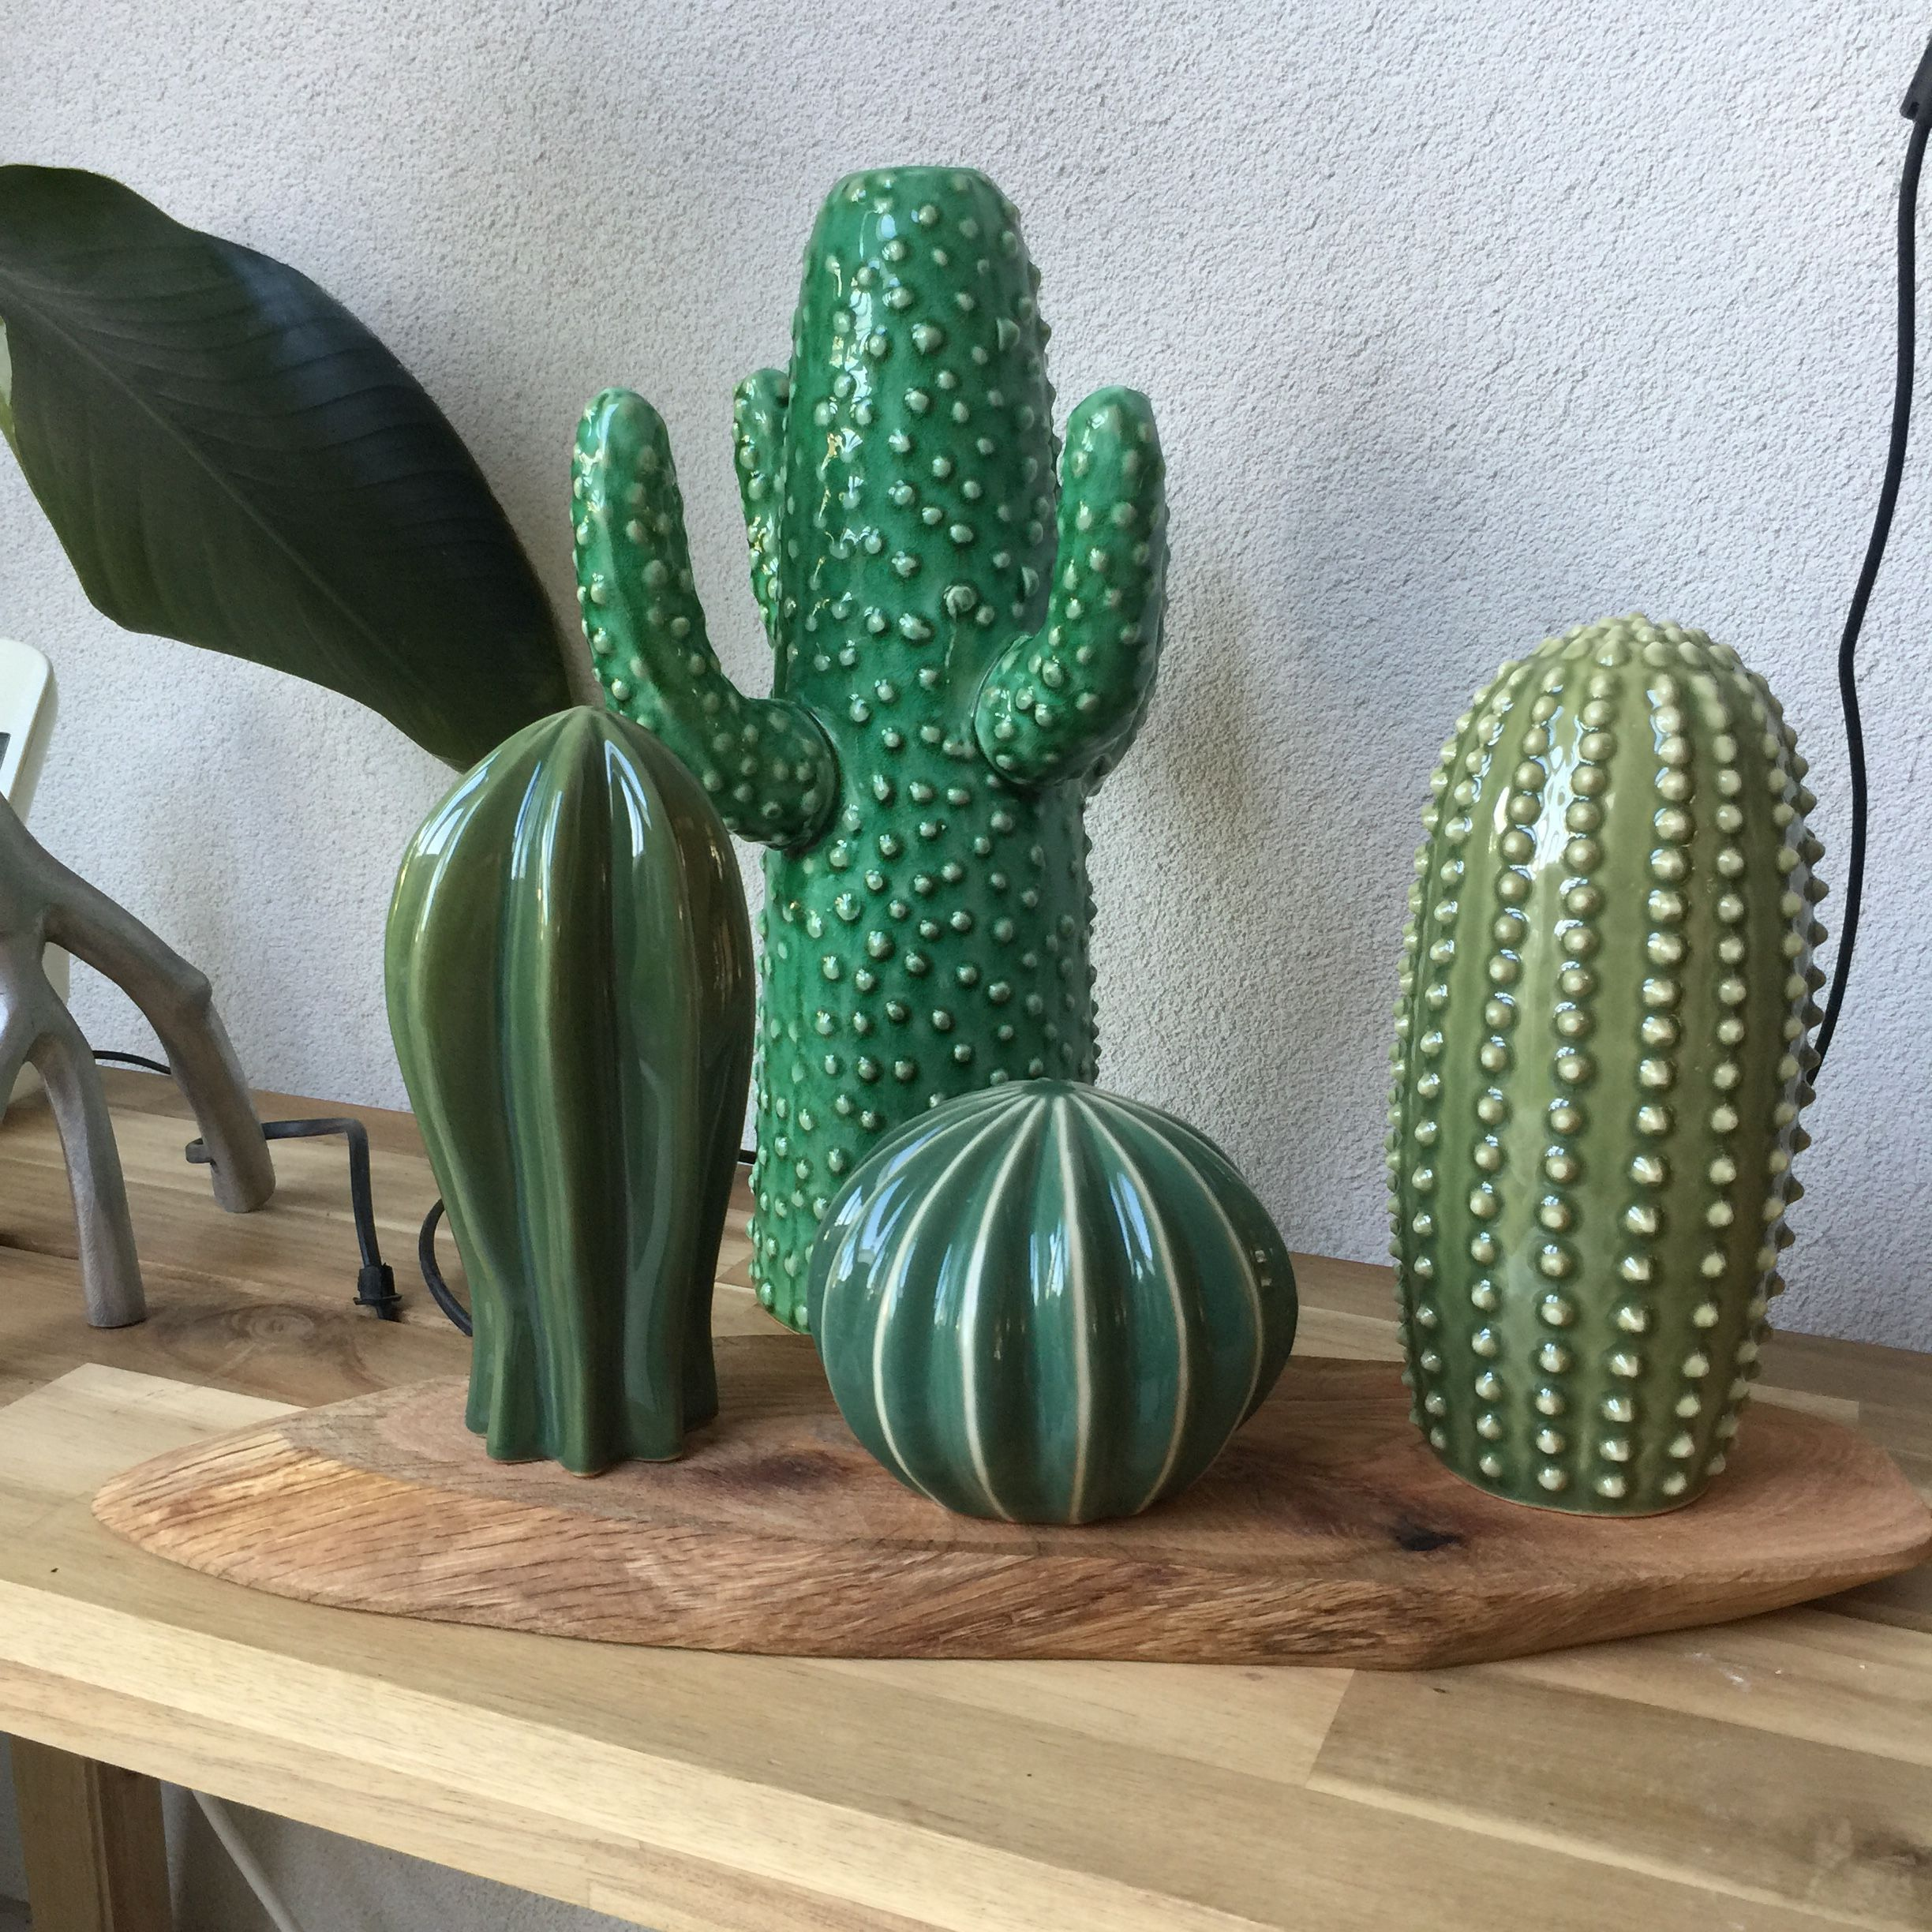 ceramic cactus ikea my beautiful home pinterest cacti pottery and cactus decor. Black Bedroom Furniture Sets. Home Design Ideas